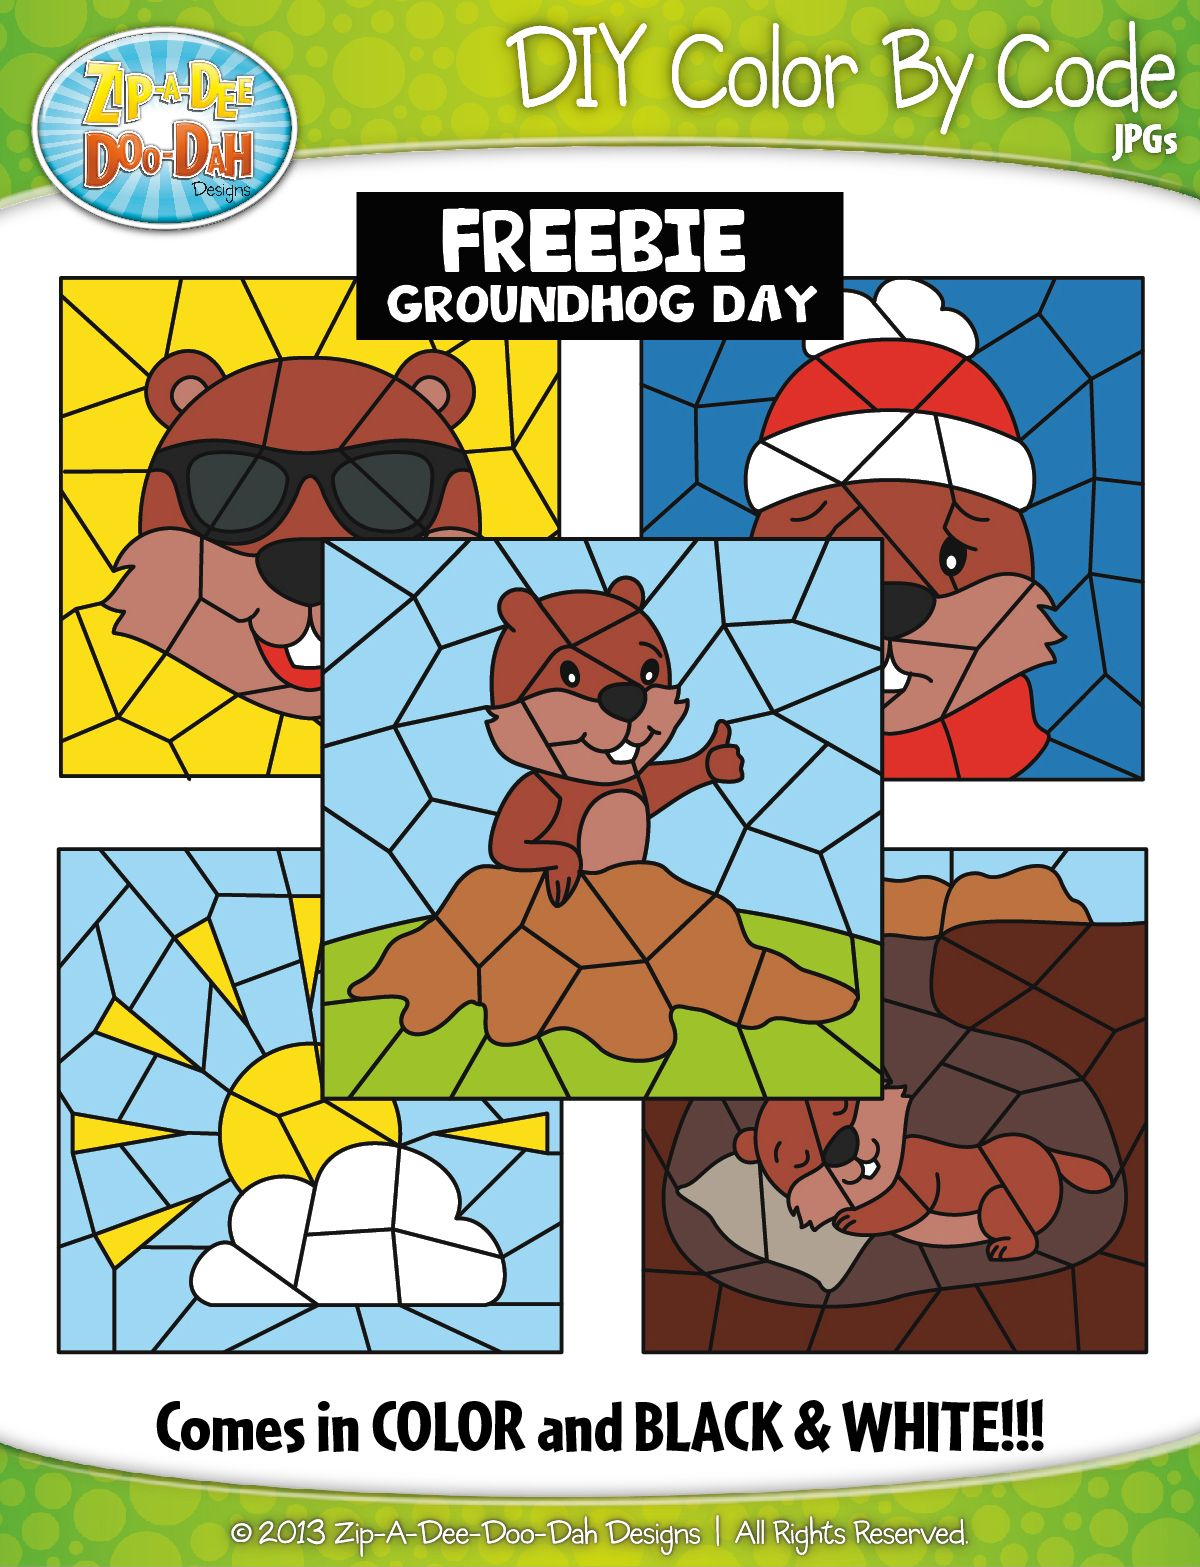 Free Groundhog Day Color By Code Clipart Zip A Dee Doo